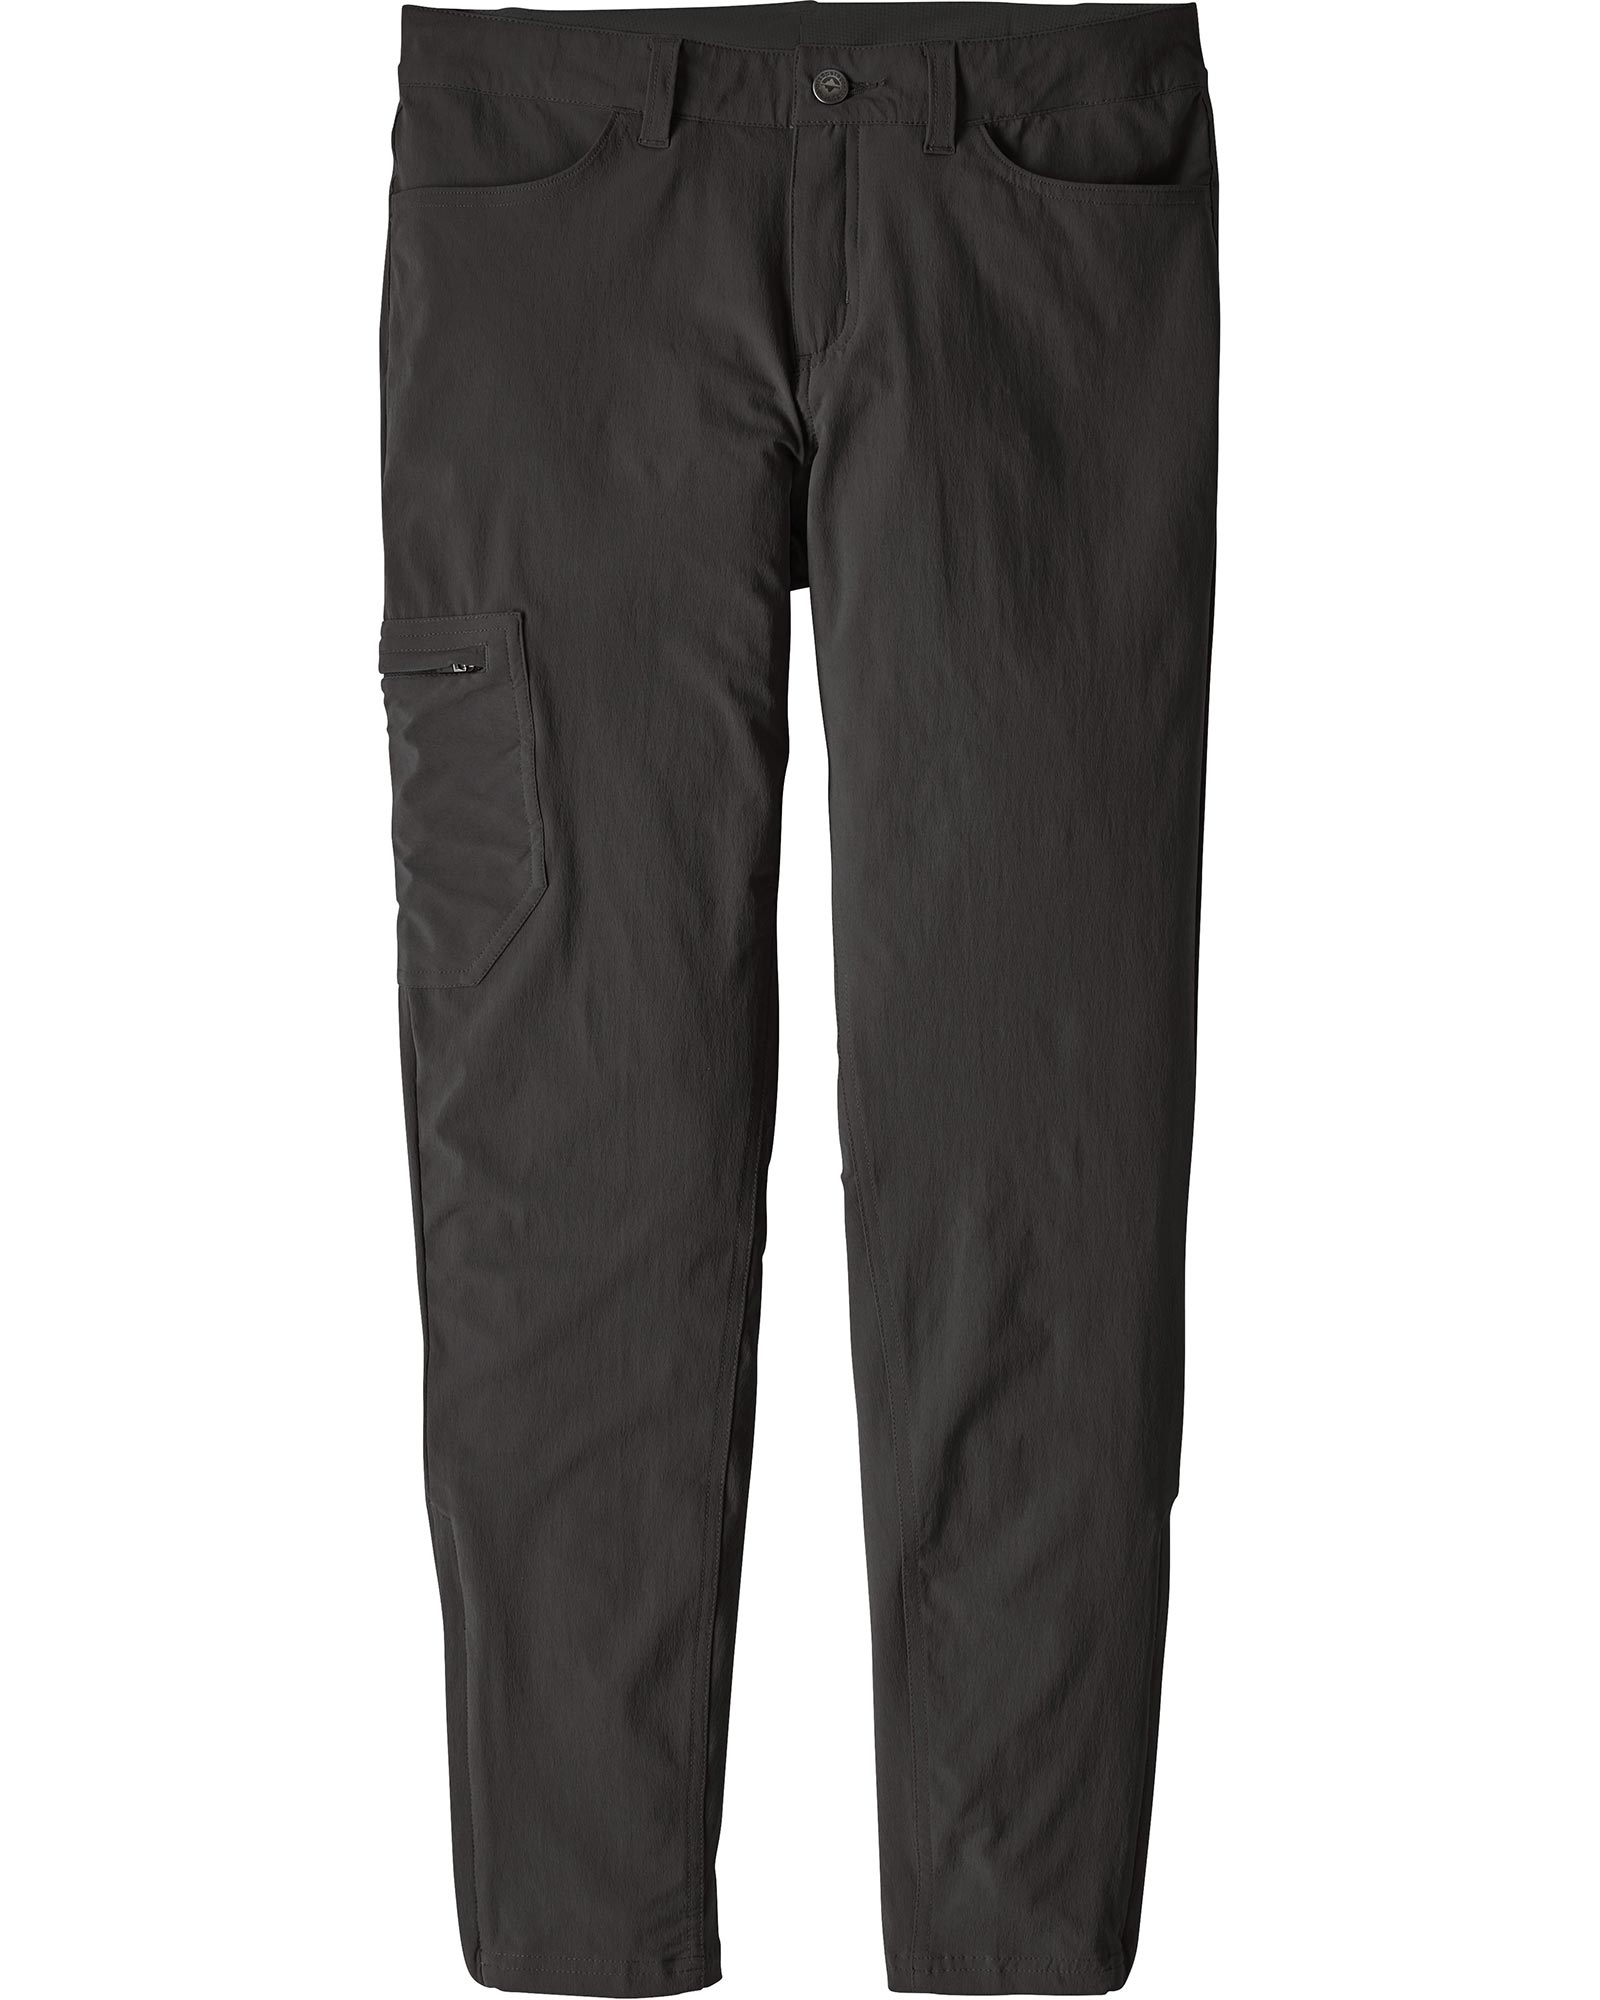 Patagonia Women's Skyline Traveller Pants 0